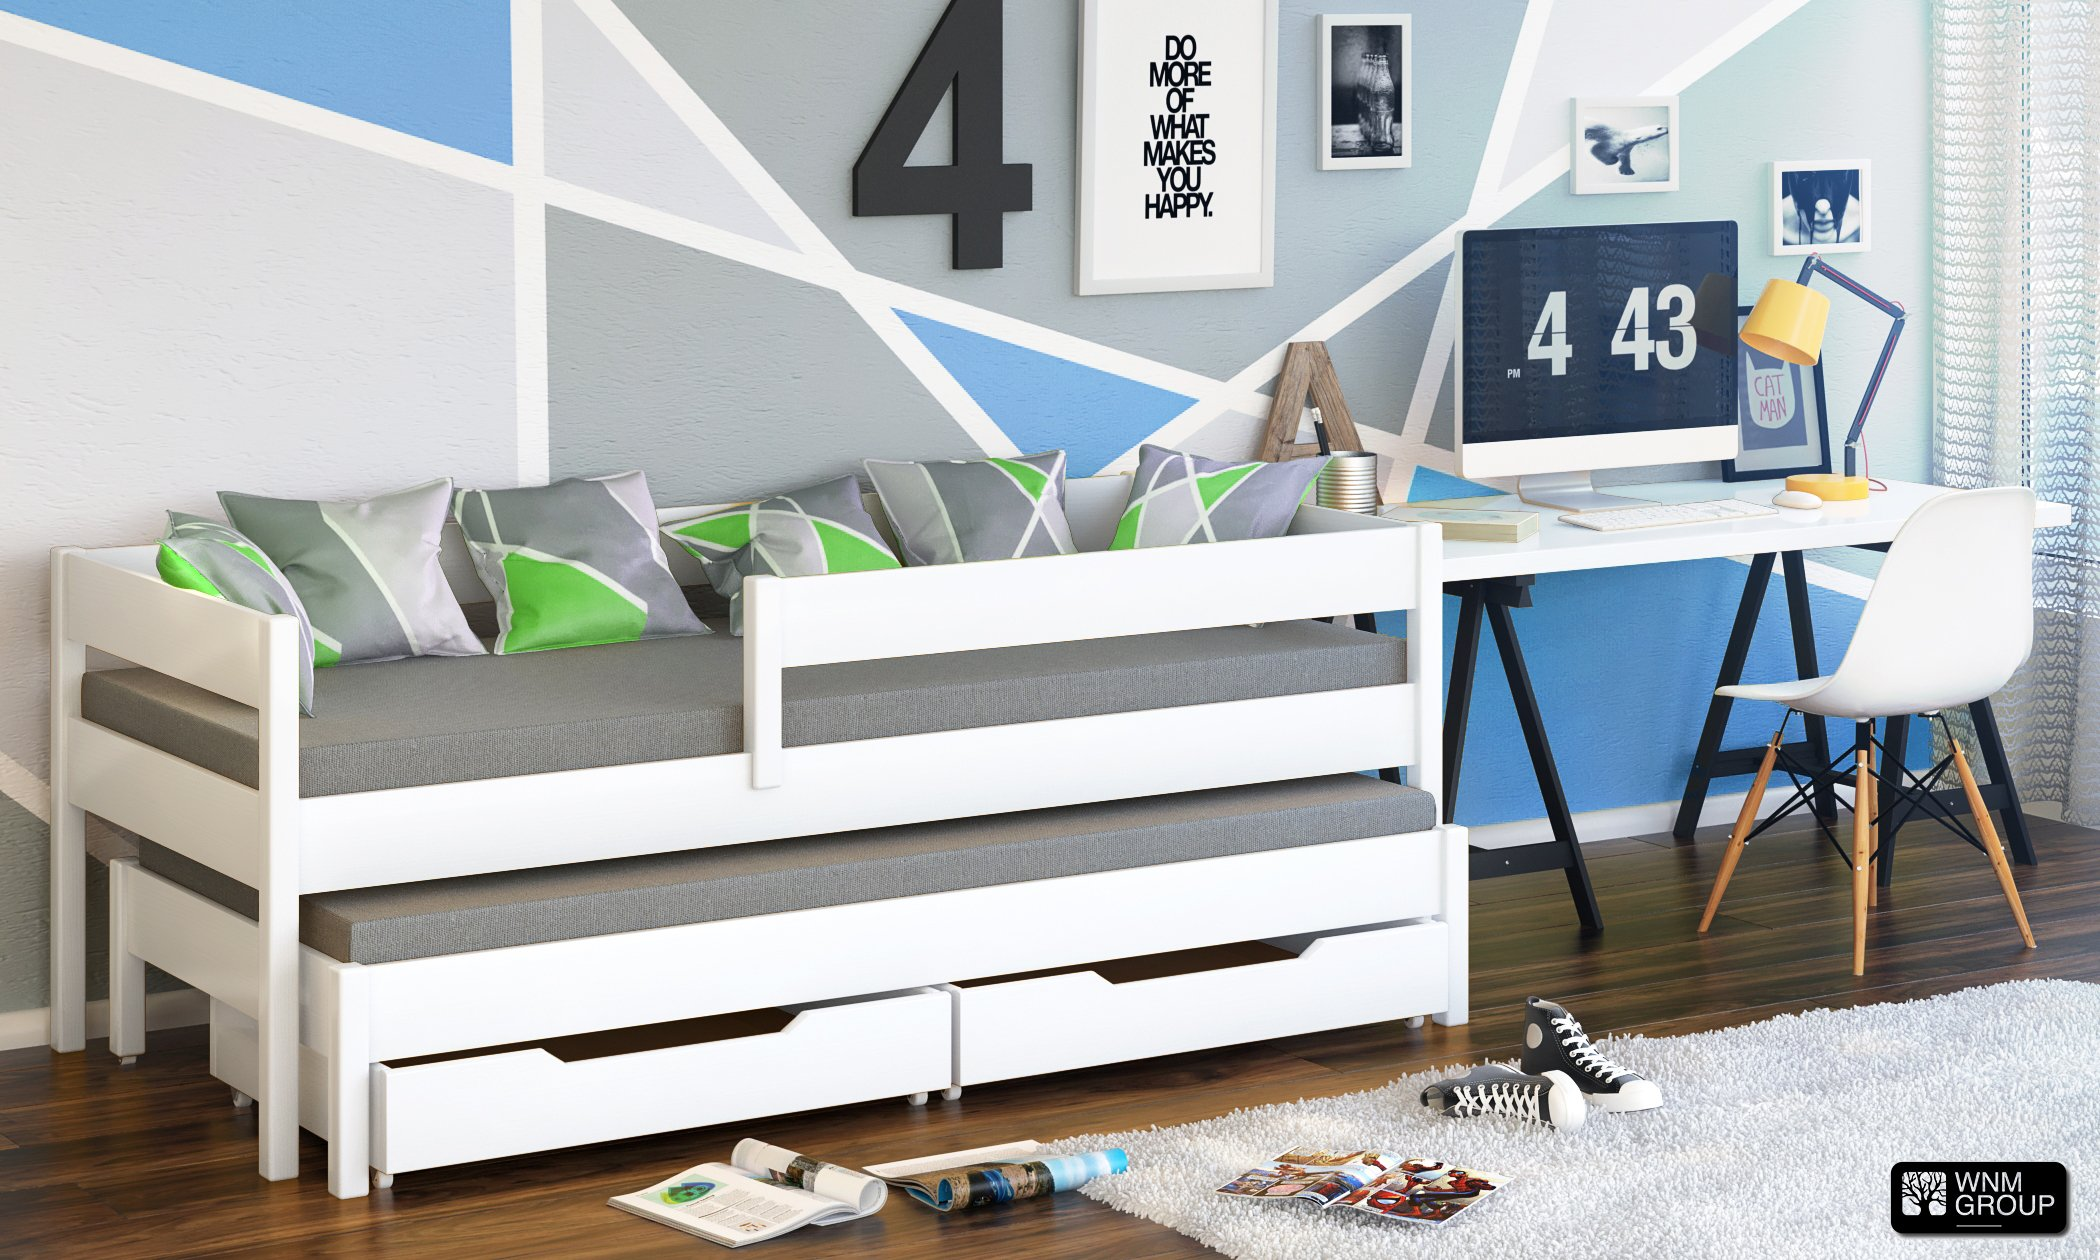 Jula Single bed for kids with trundle with 2 mattress and drawers (White, 180x80/170x80) Jula Bed with trundle Legs made of solid wood with a thickness of 45x45 mm, Bedframe strength up to 150kg You get the external dimension of the bed by adding 7 cm in to the dimension in table Two Foam comfortable mattress (10cm thickness) 2